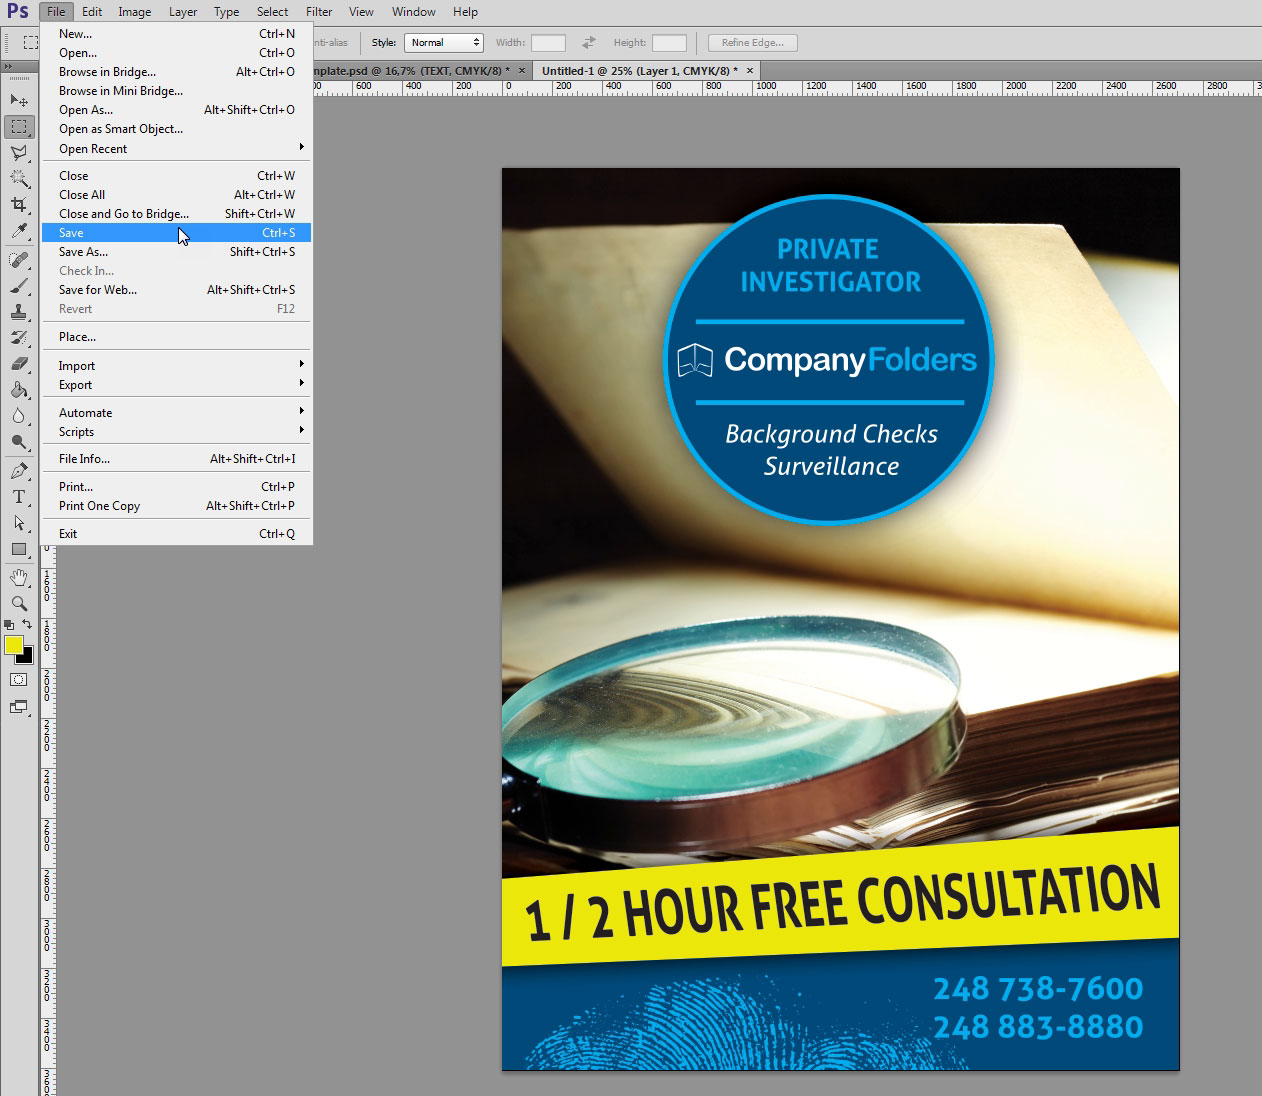 Creating Mockup-Ready Images from a Photoshop Template - Step 5